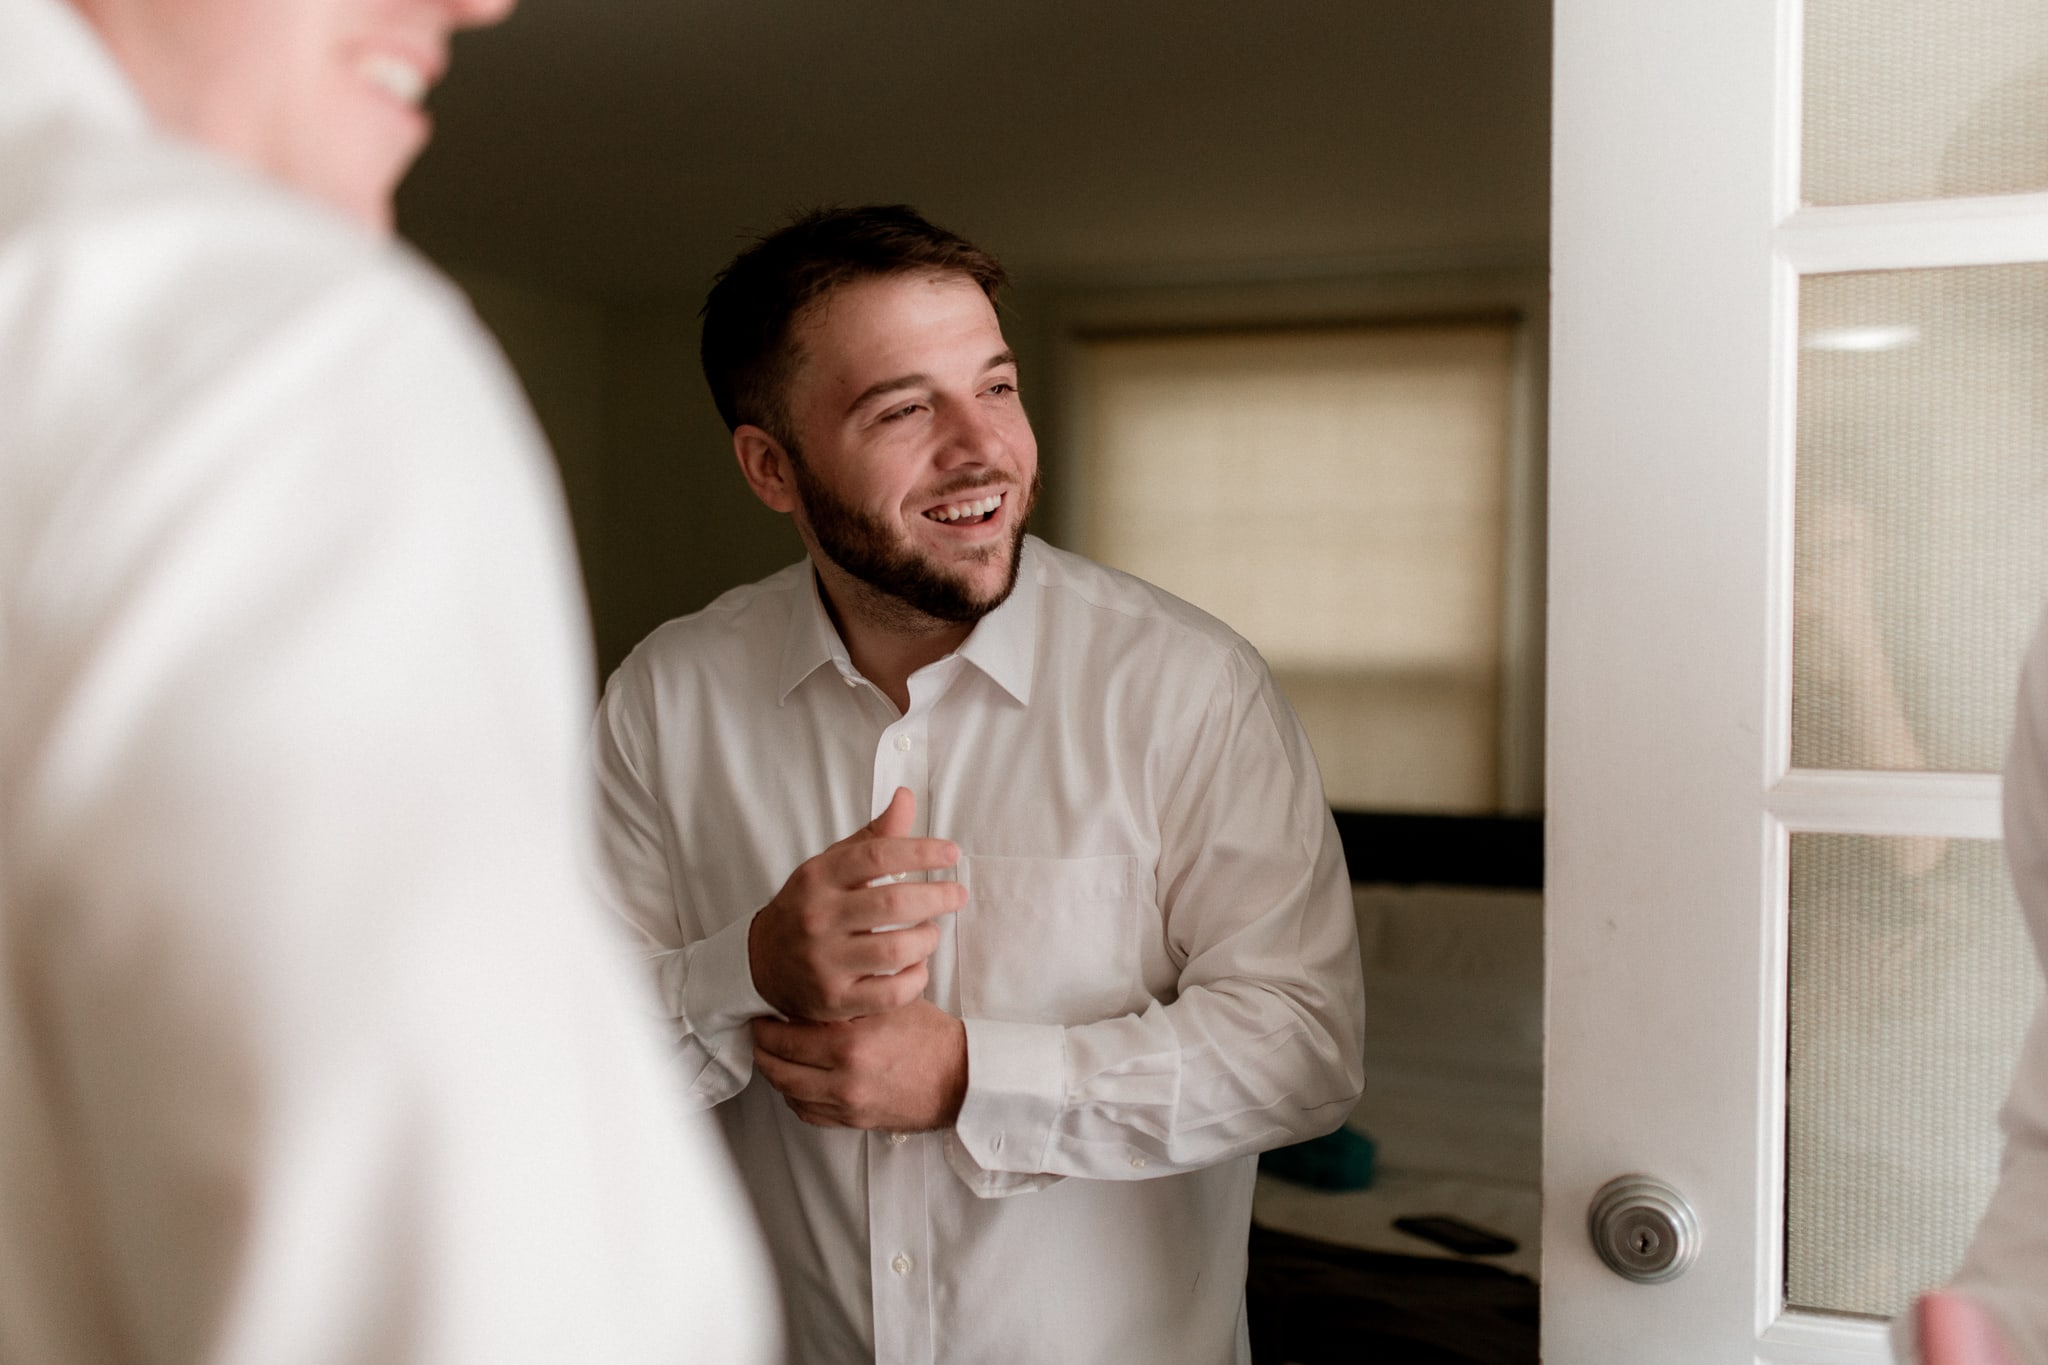 Wedding at York Harbor Inn Maine - Katie Jean Photography